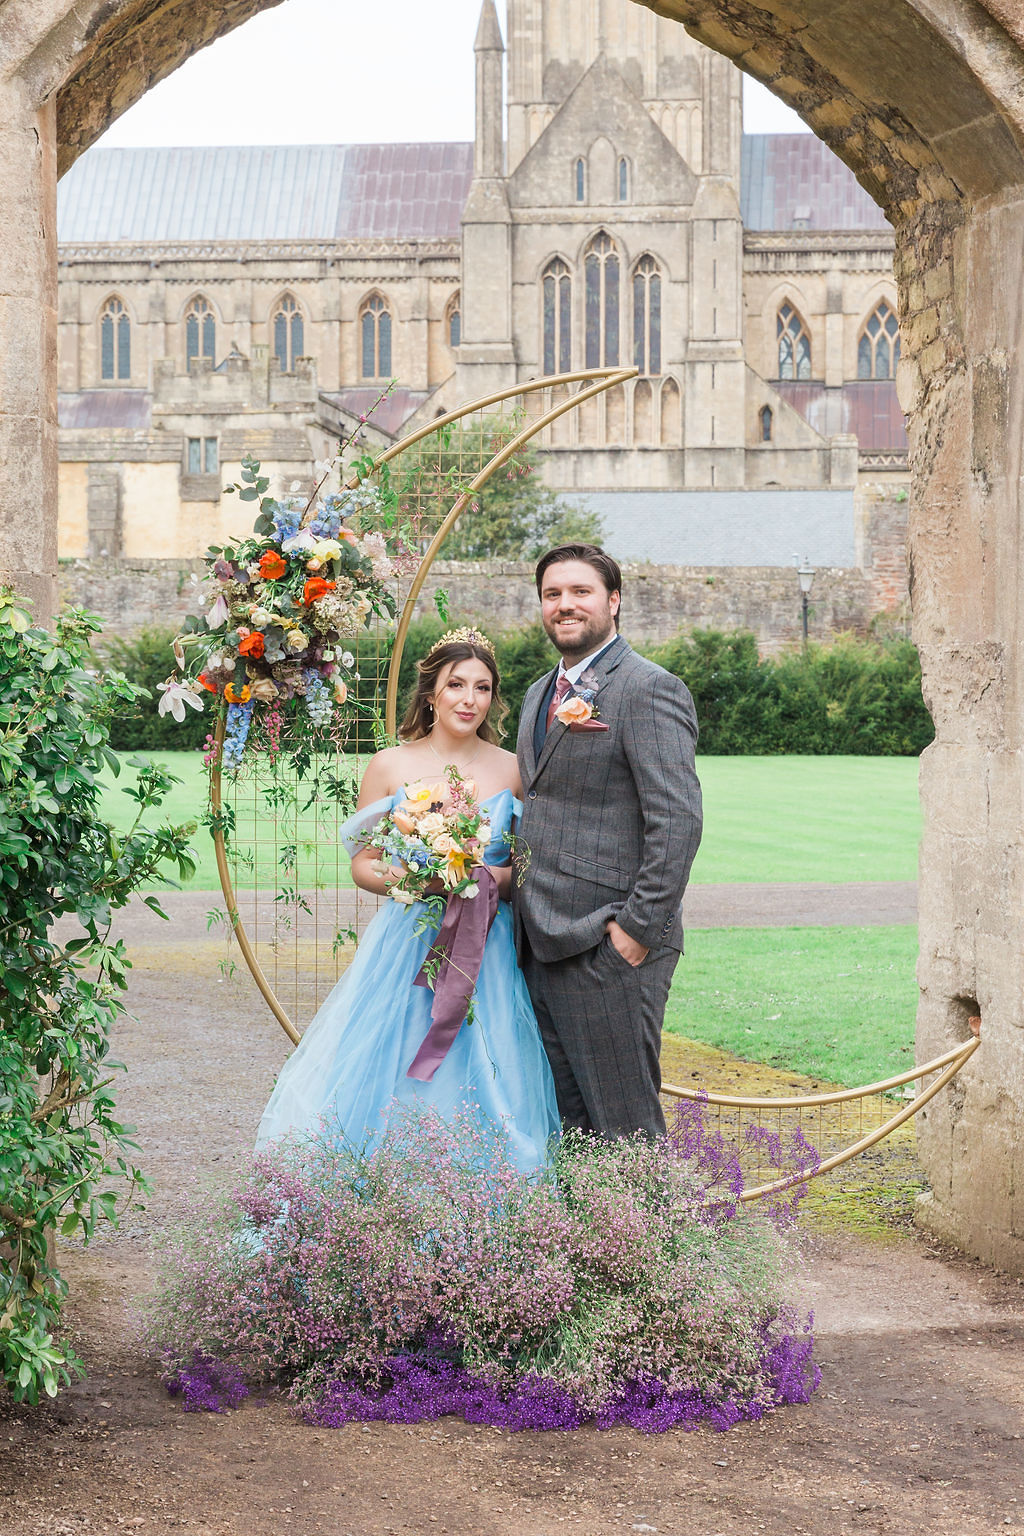 Romantic Pastel Coloured Wedding At Bishops Palace Wells, Somerset